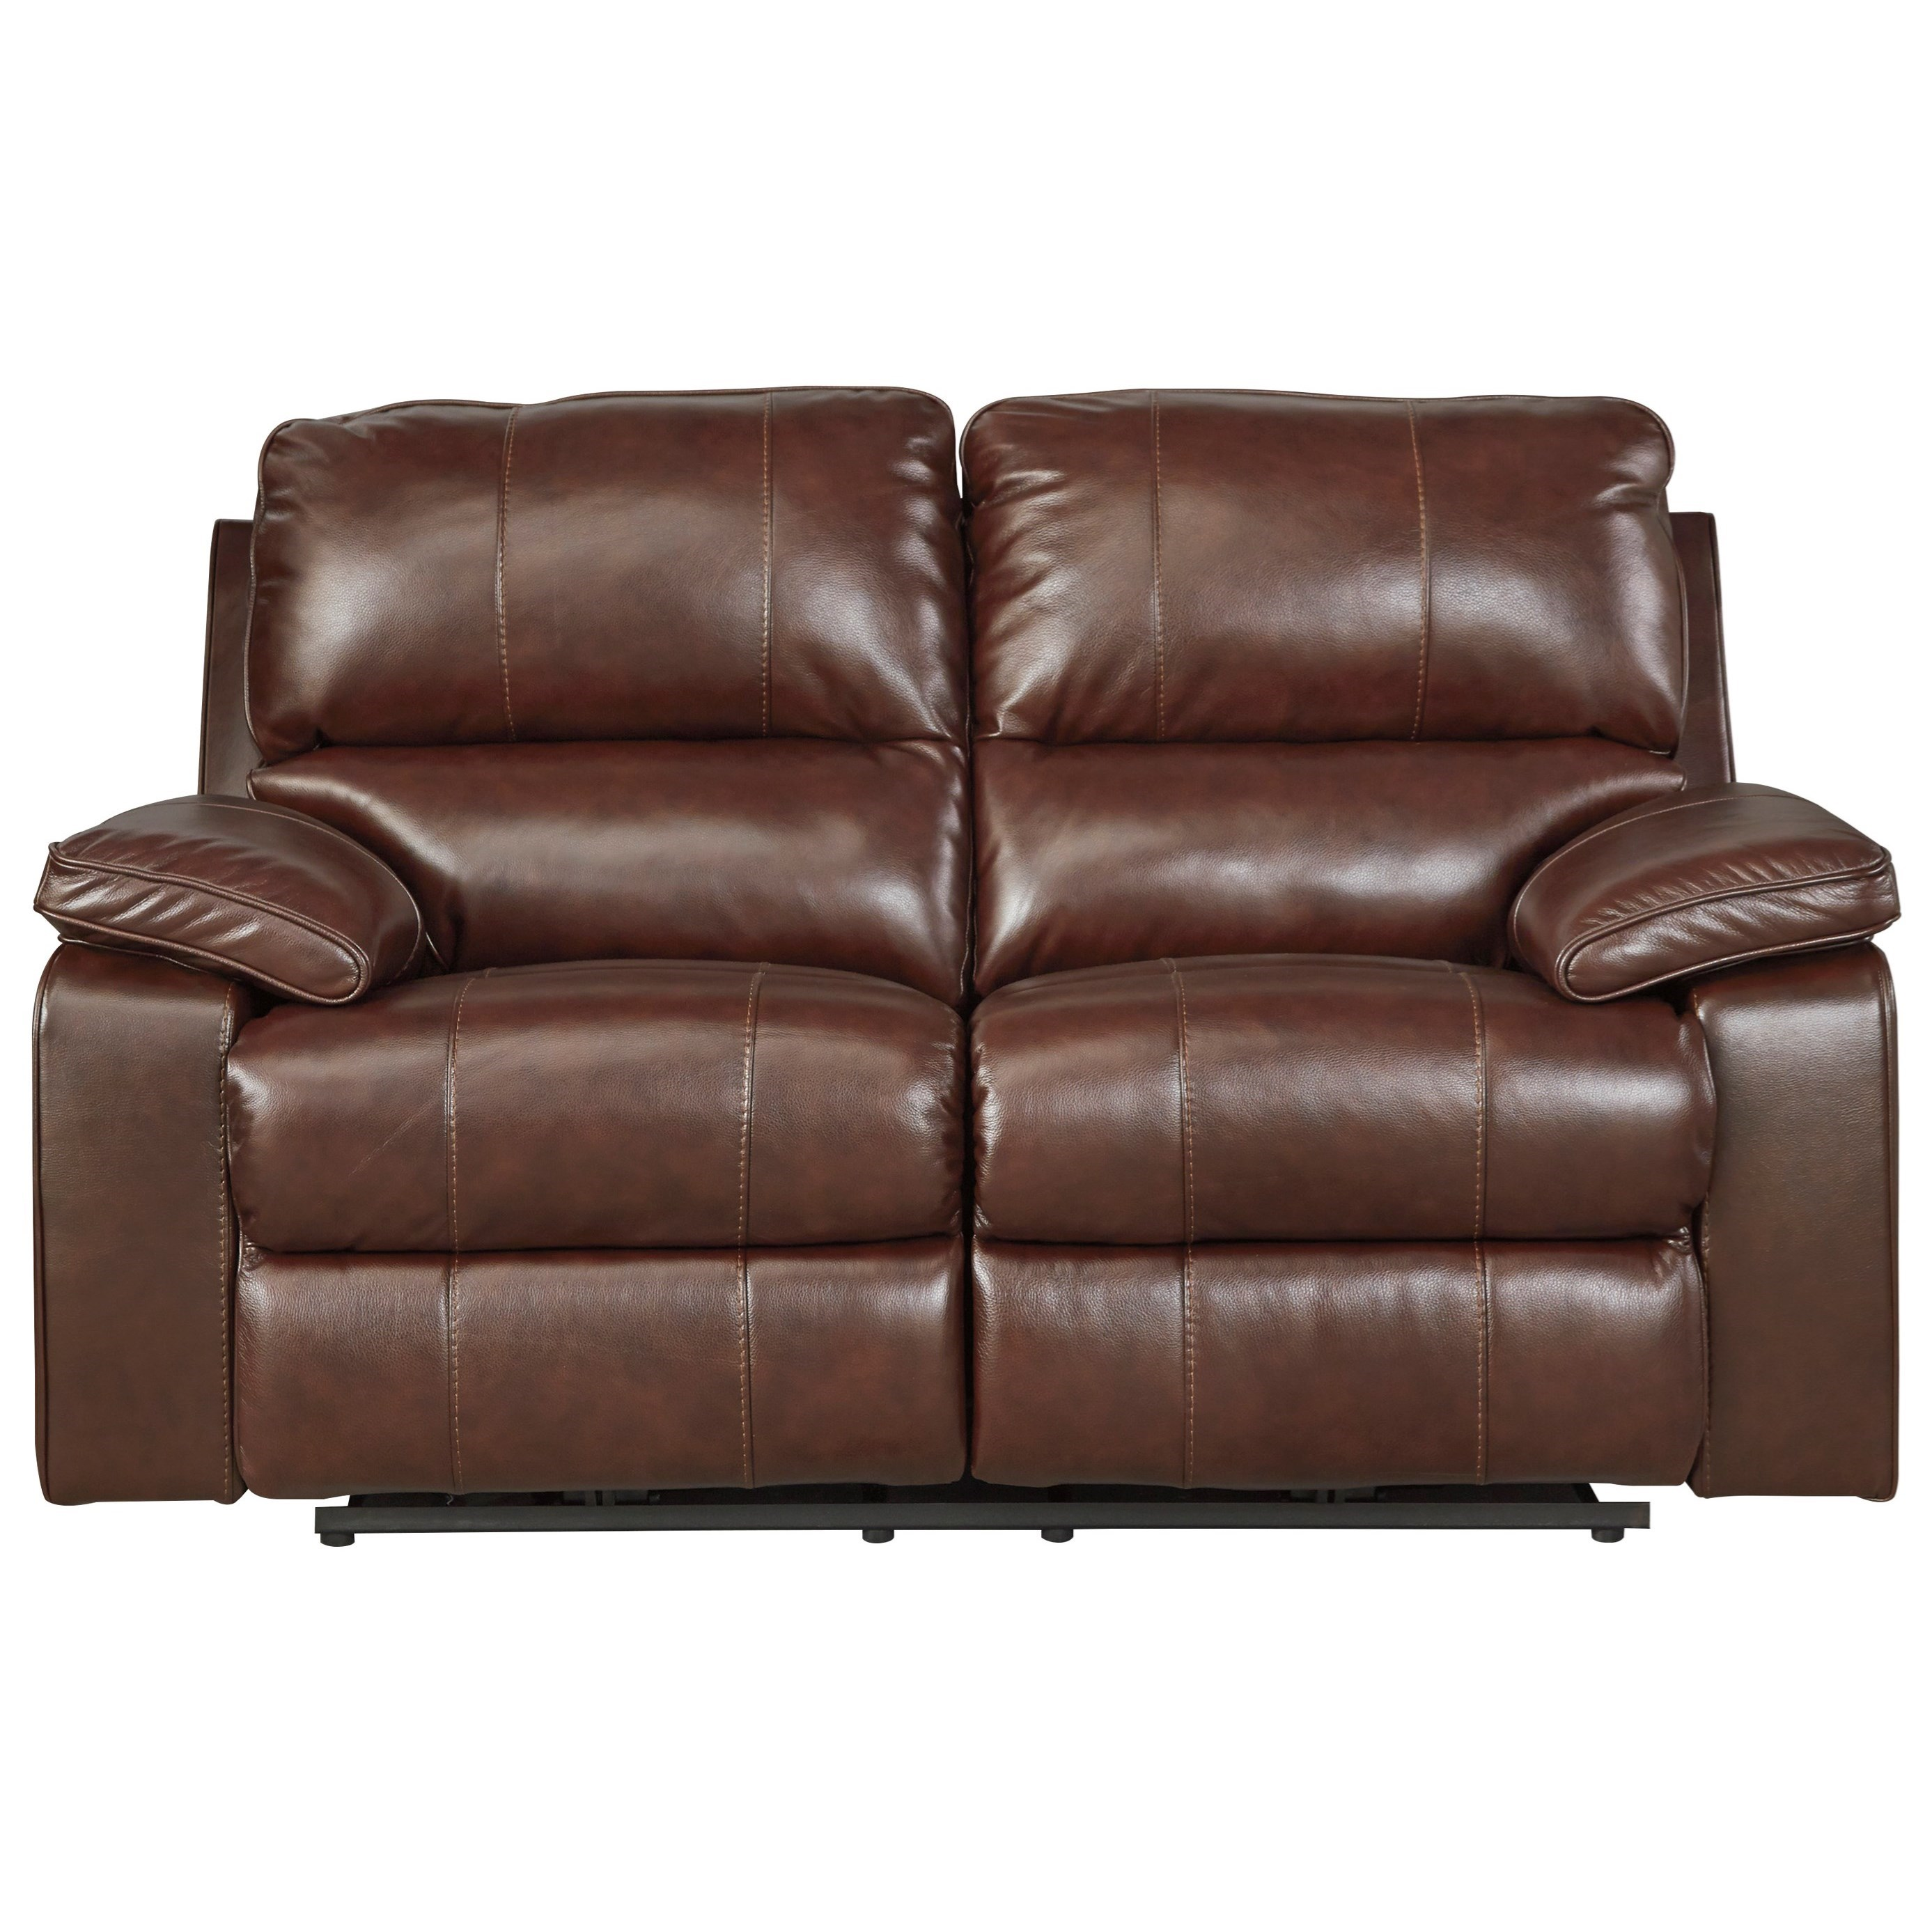 Signature Design by Ashley Transister Power Reclining Loveseat w/ Adj. Headrest - Item Number: 5130214